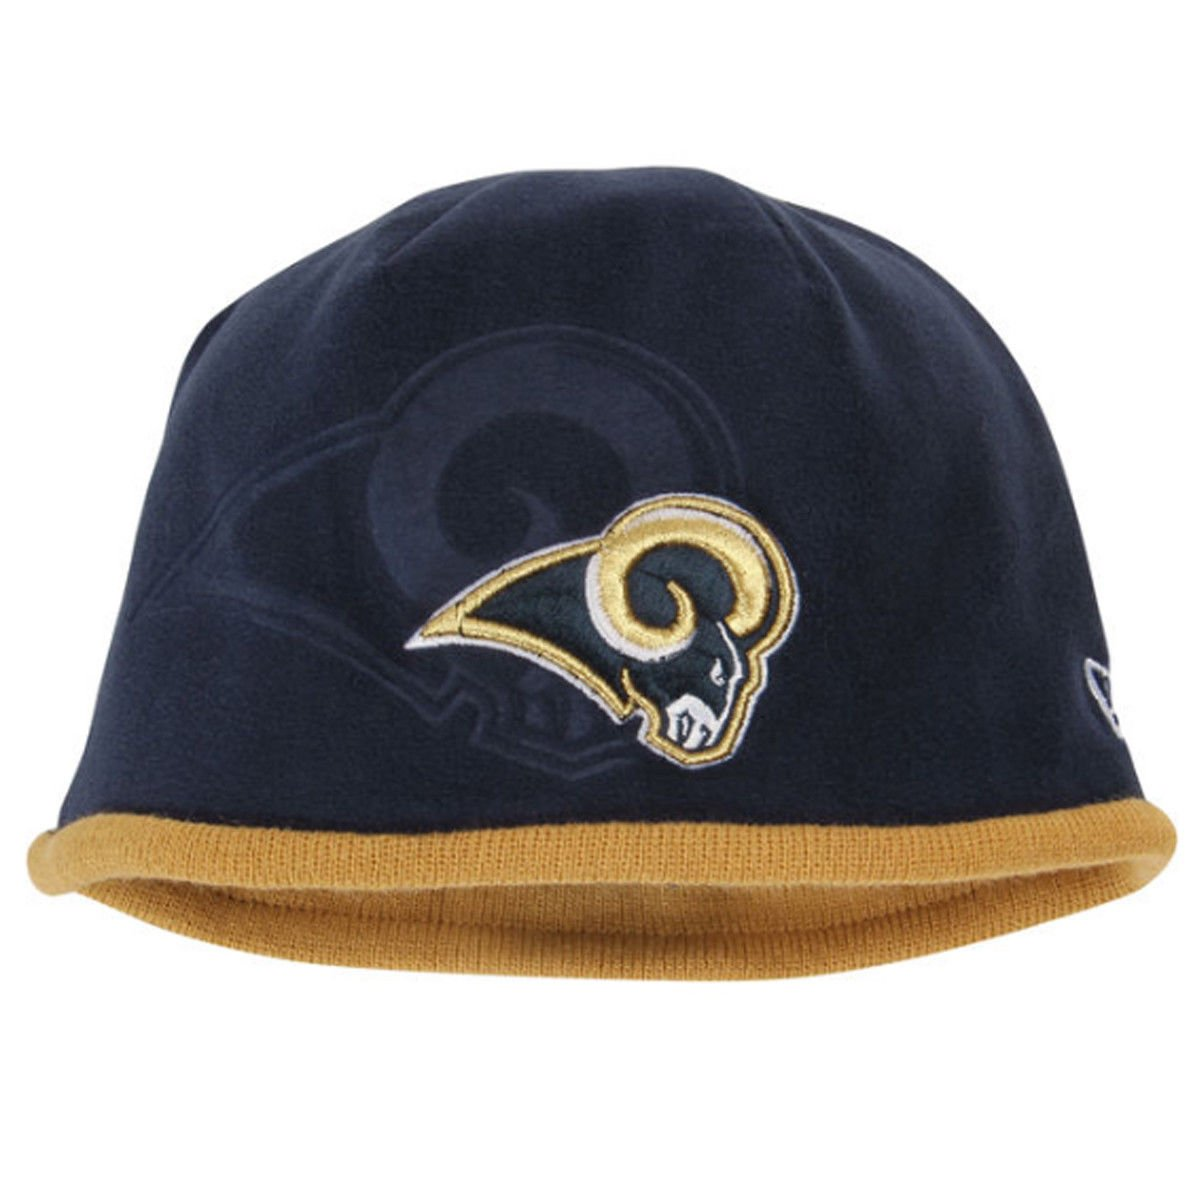 Details about NWT NFL Official Los Angeles Rams Blue and Gold Tech Knit Hat  New Era Cap OSFM cc28b228226